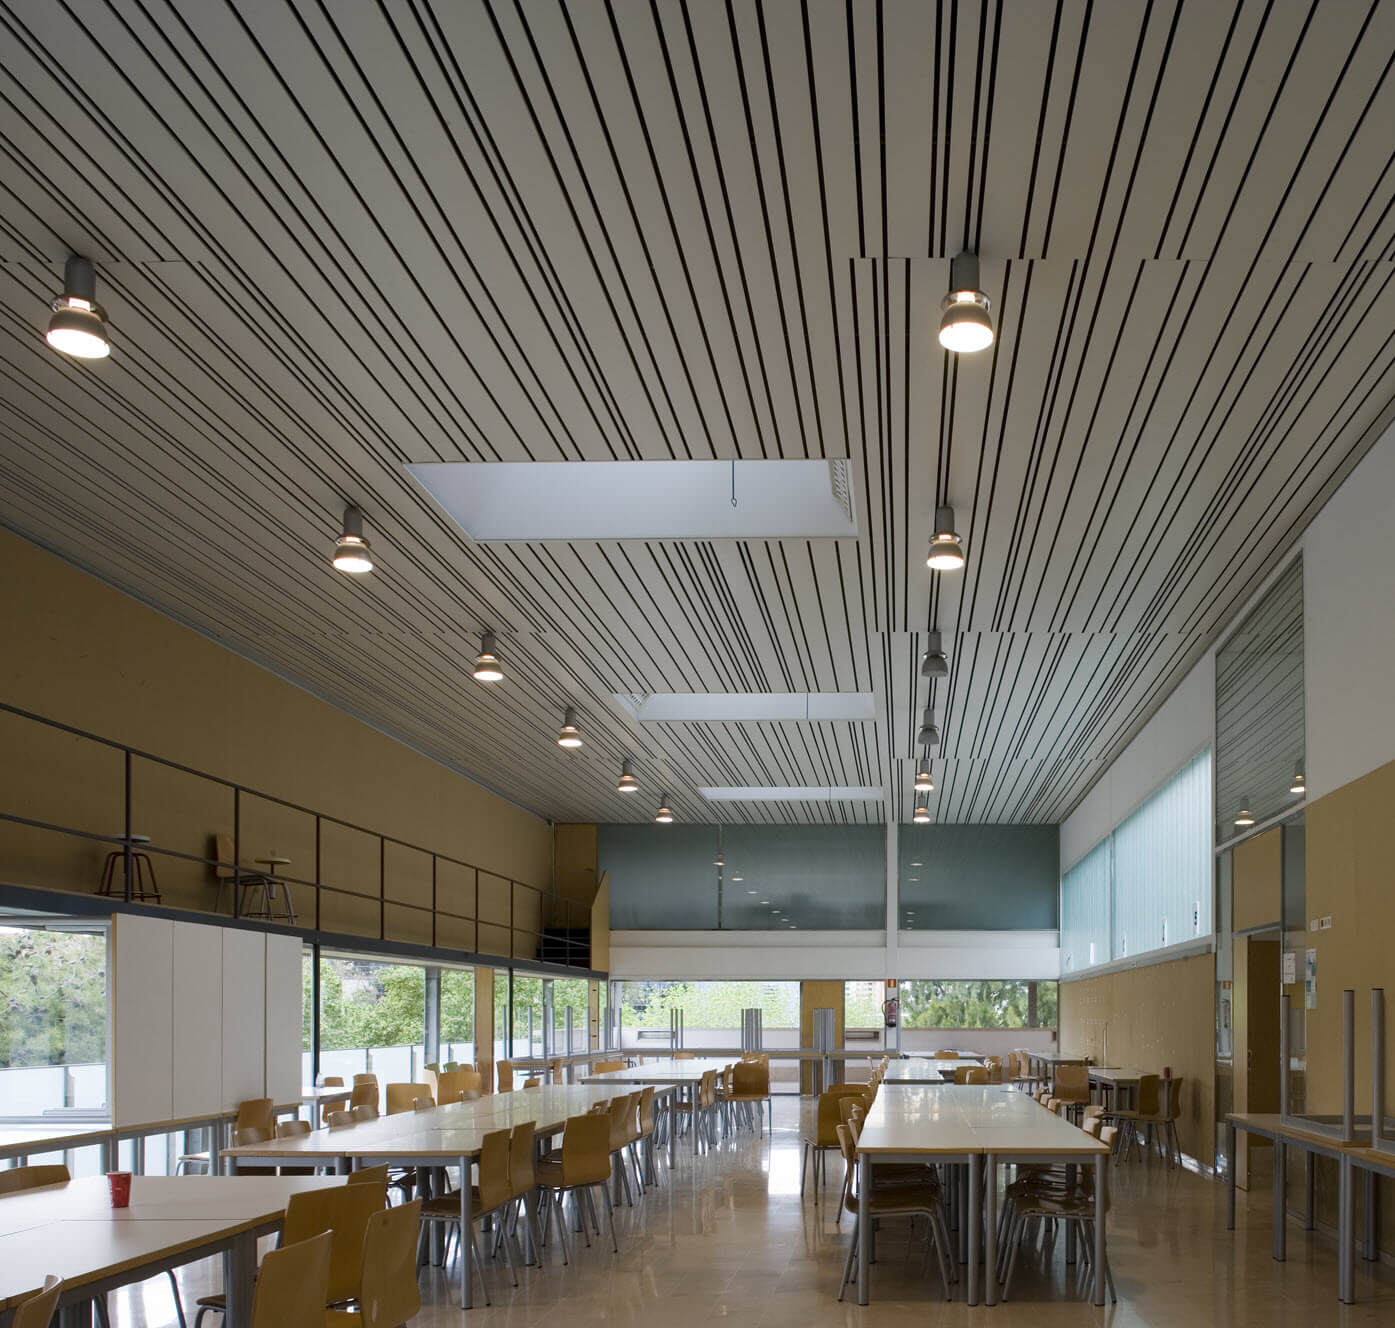 Modular Metal Ceilings Vinayak Fenster Systems